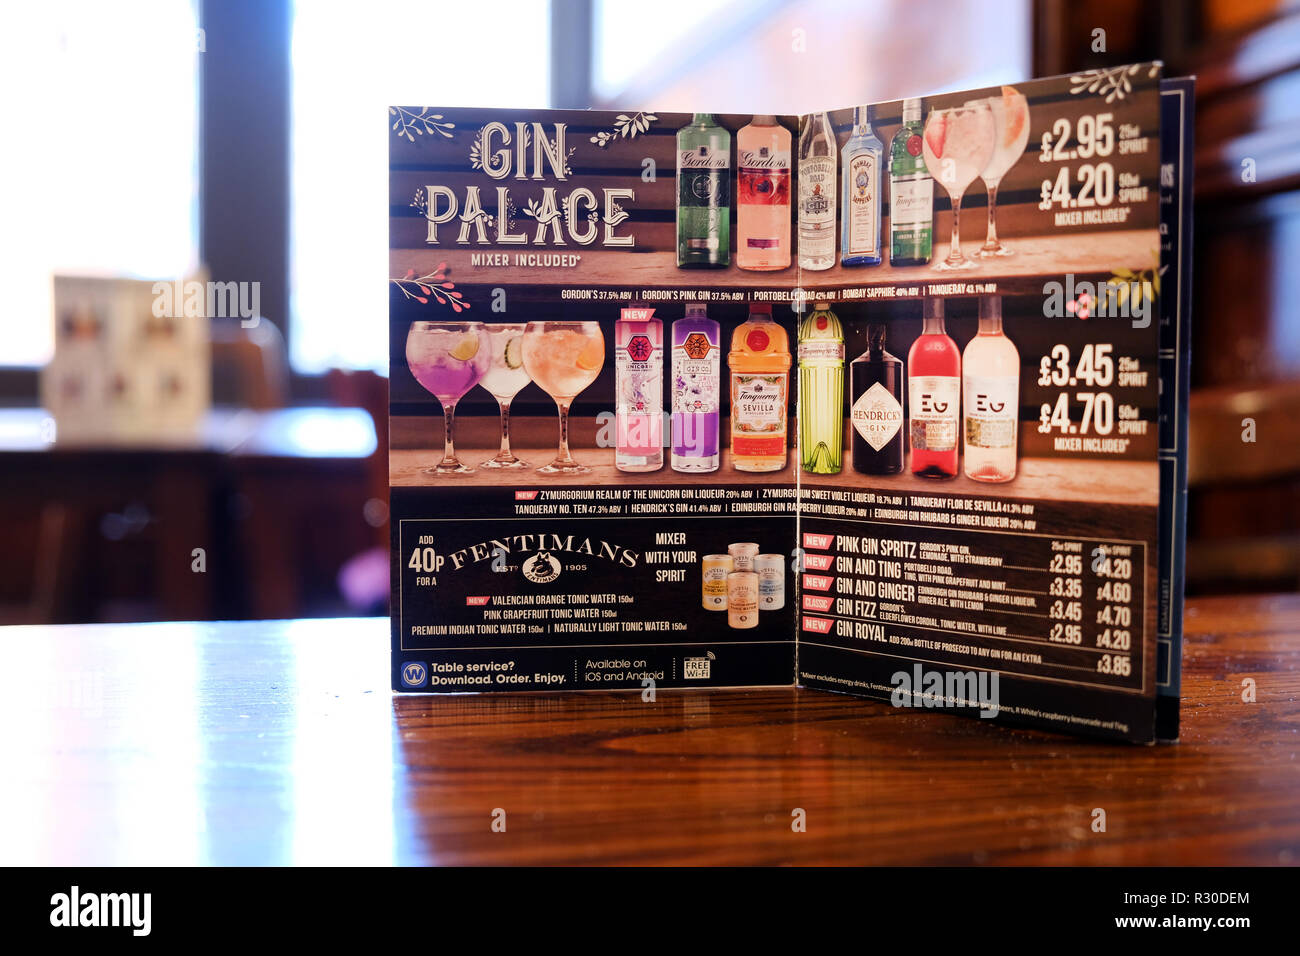 A JD Wetherspoons drinks menu card showing the Gin Palace options for the pubs customers. its propped open on a table inside one of their pubs - Stock Image